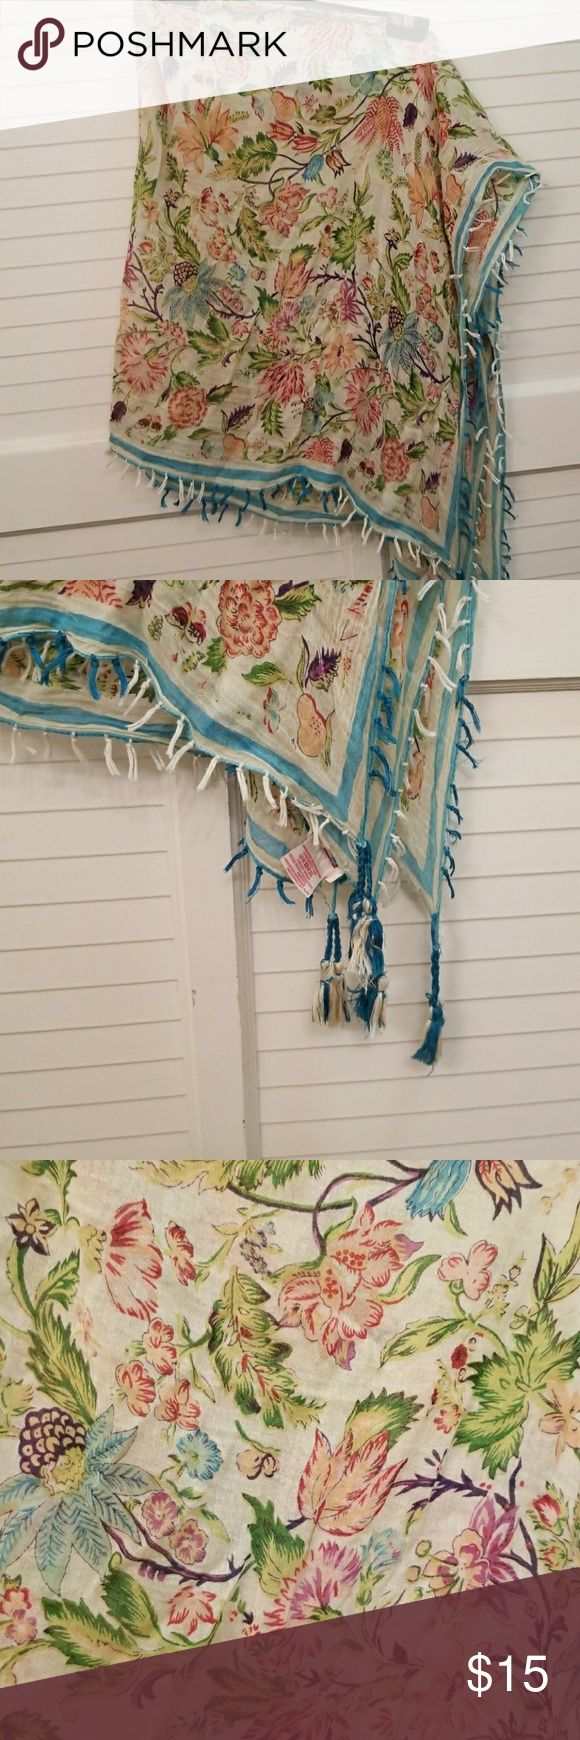 Anthropologie square scarf thin floral with tassle Anthropologie square scarf thin floral with tassels. Photo is the scarf folder in 4s Anthropologie Accessories Scarves & Wraps